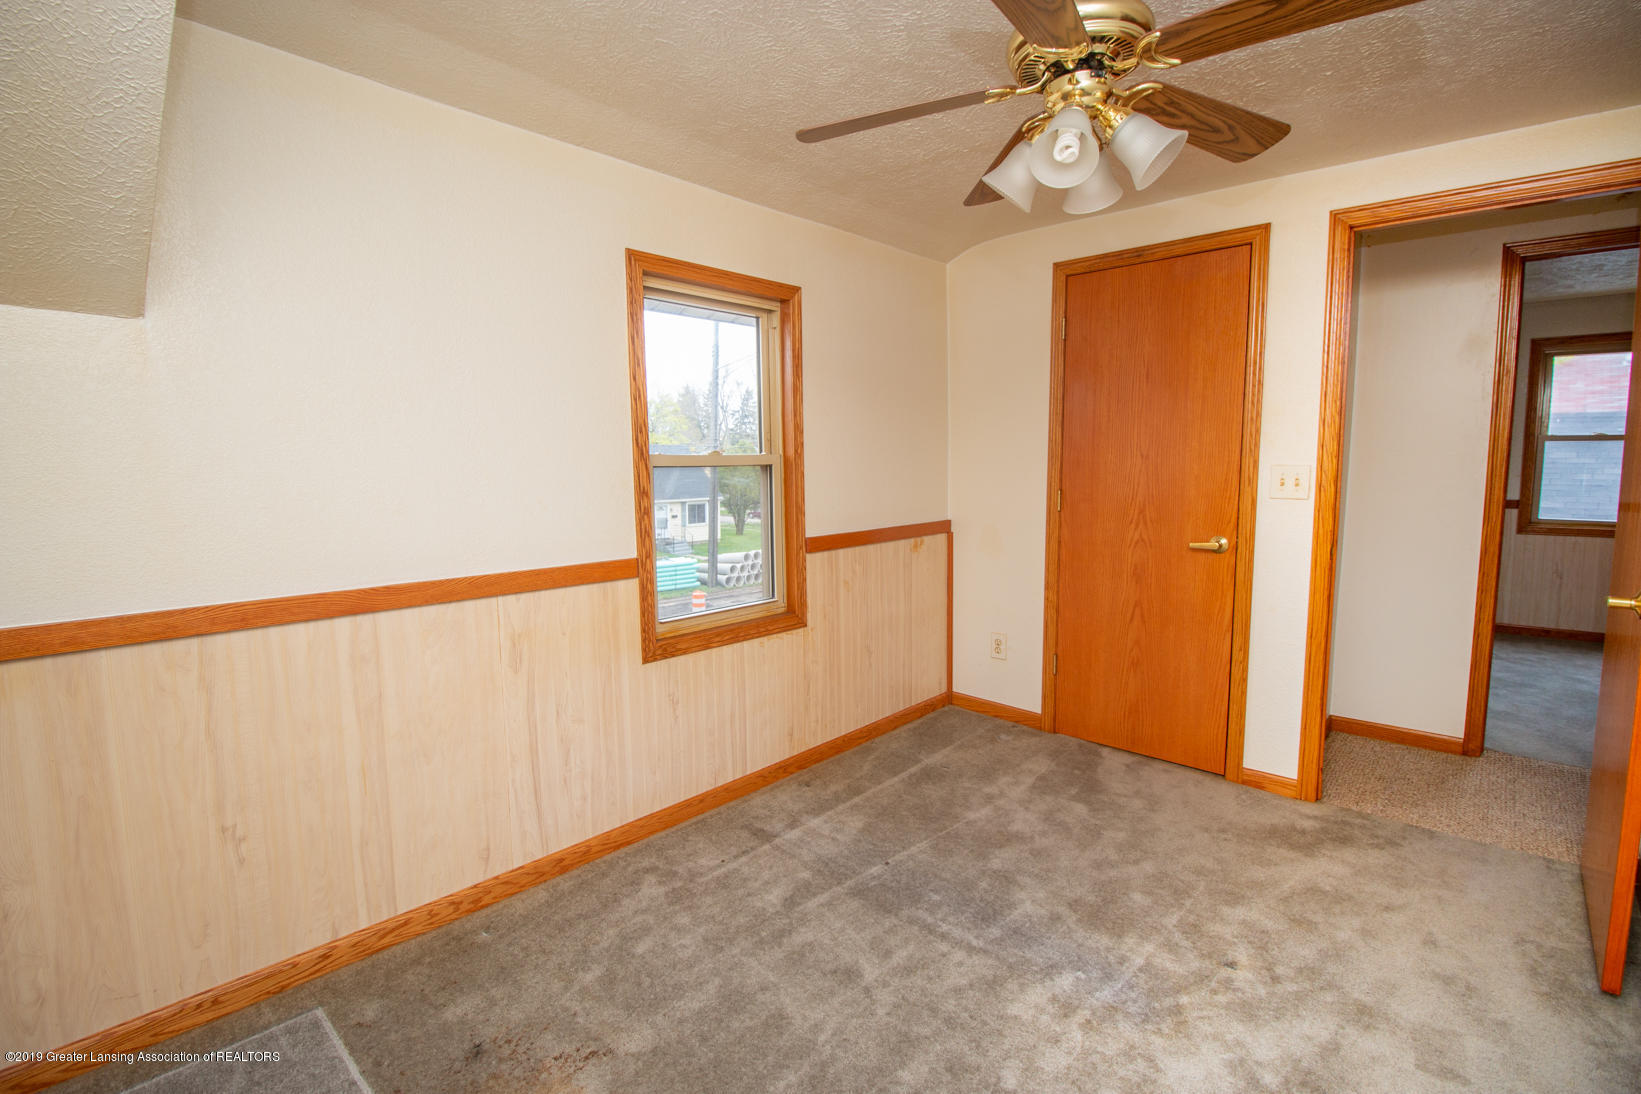 613 W Mt Hope Ave - Bedroom - 16